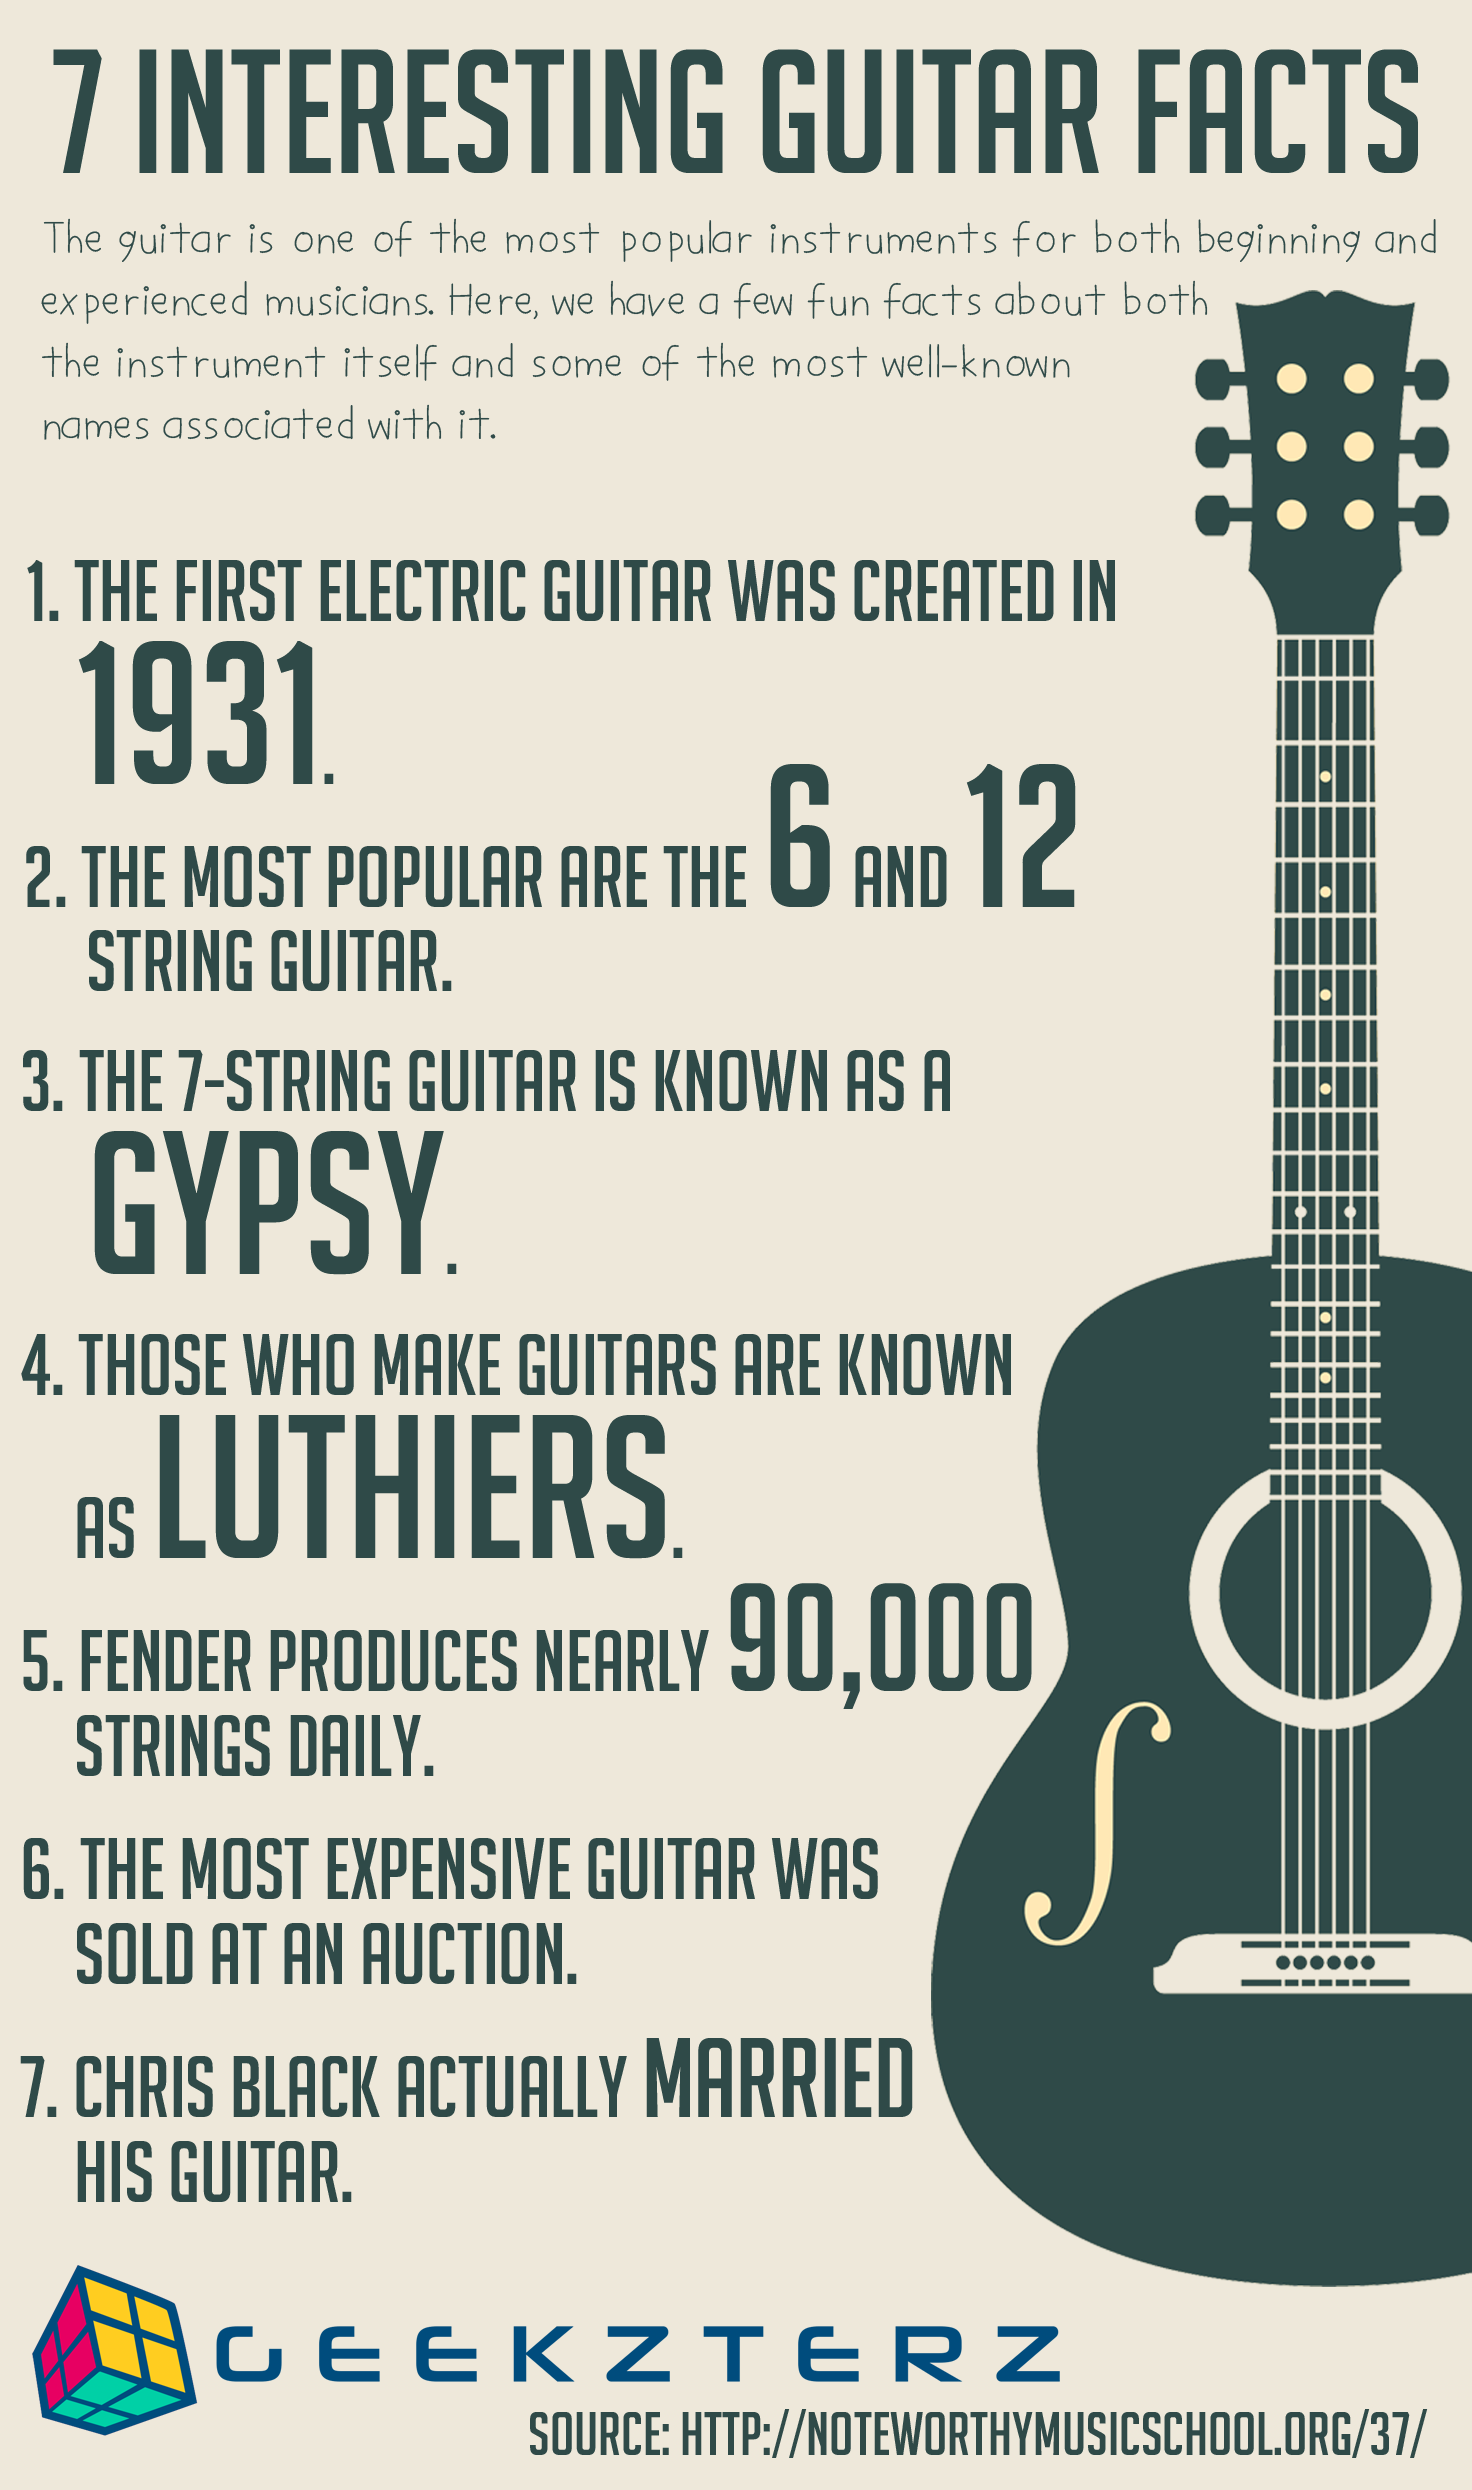 7 Interesting Guitar Facts Fun Facts Cool Guitar Facts